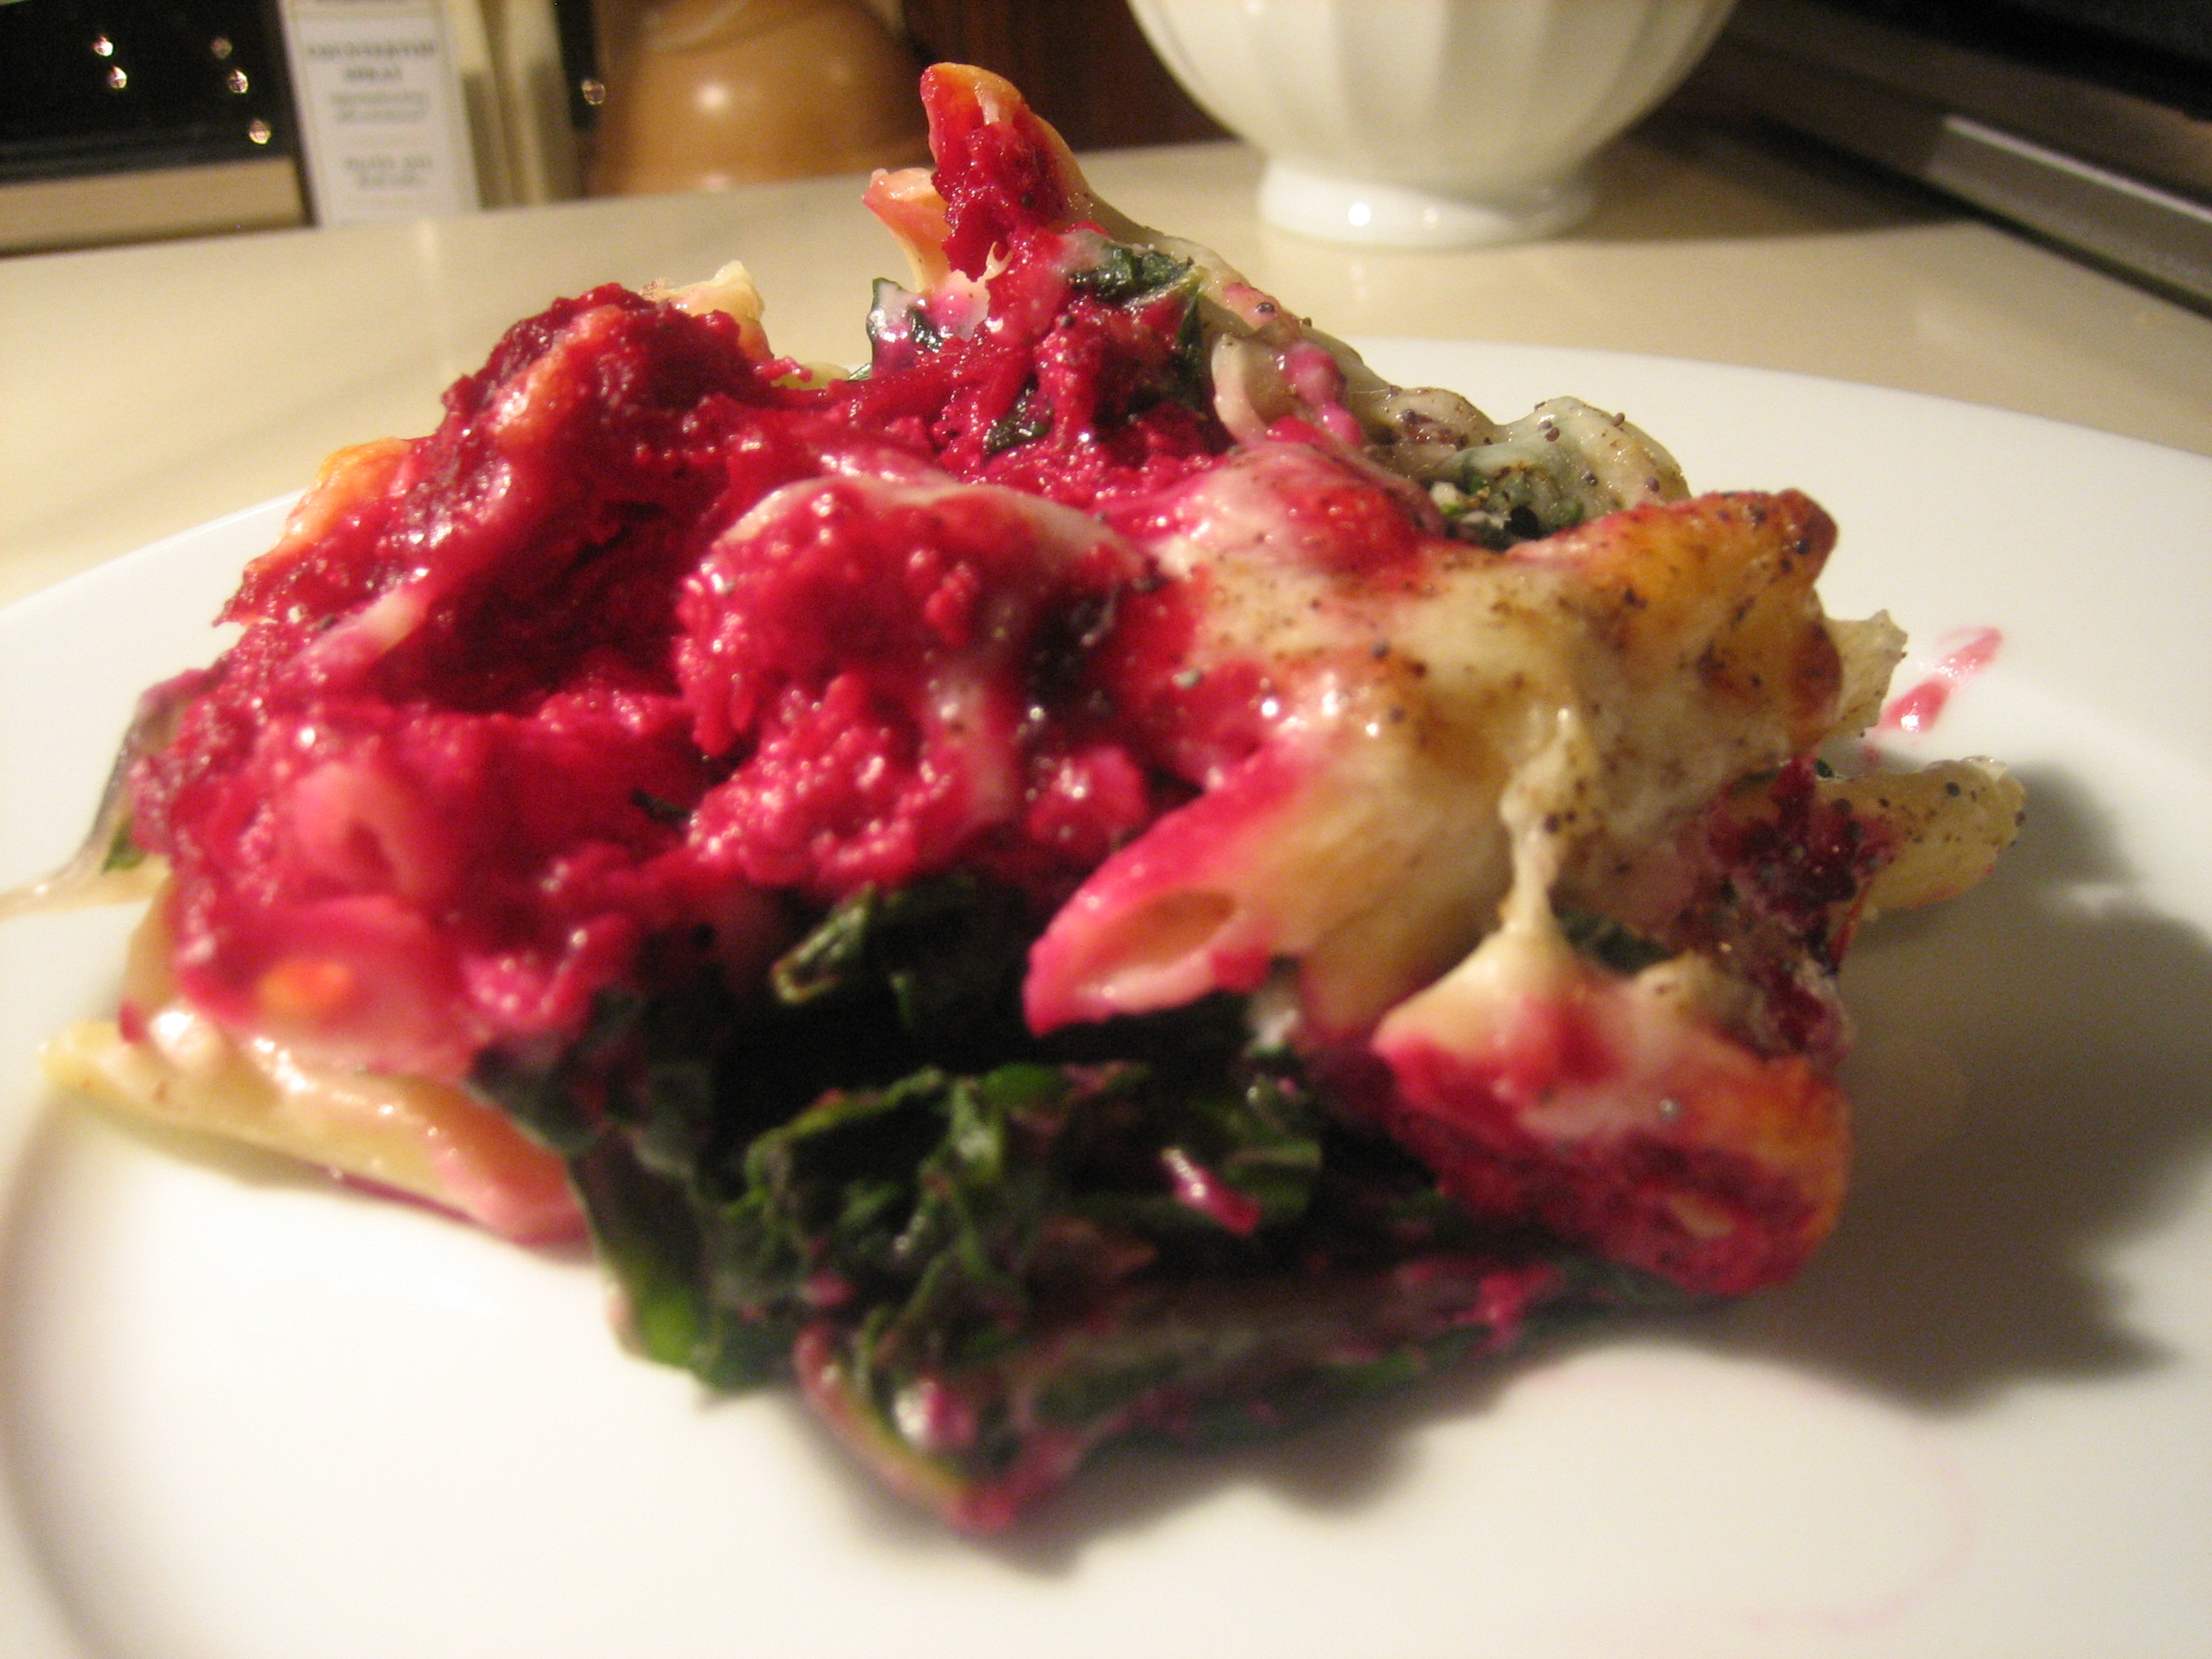 Penne with Beet Ricotta, Swiss Chard, and Walnut Bechamel